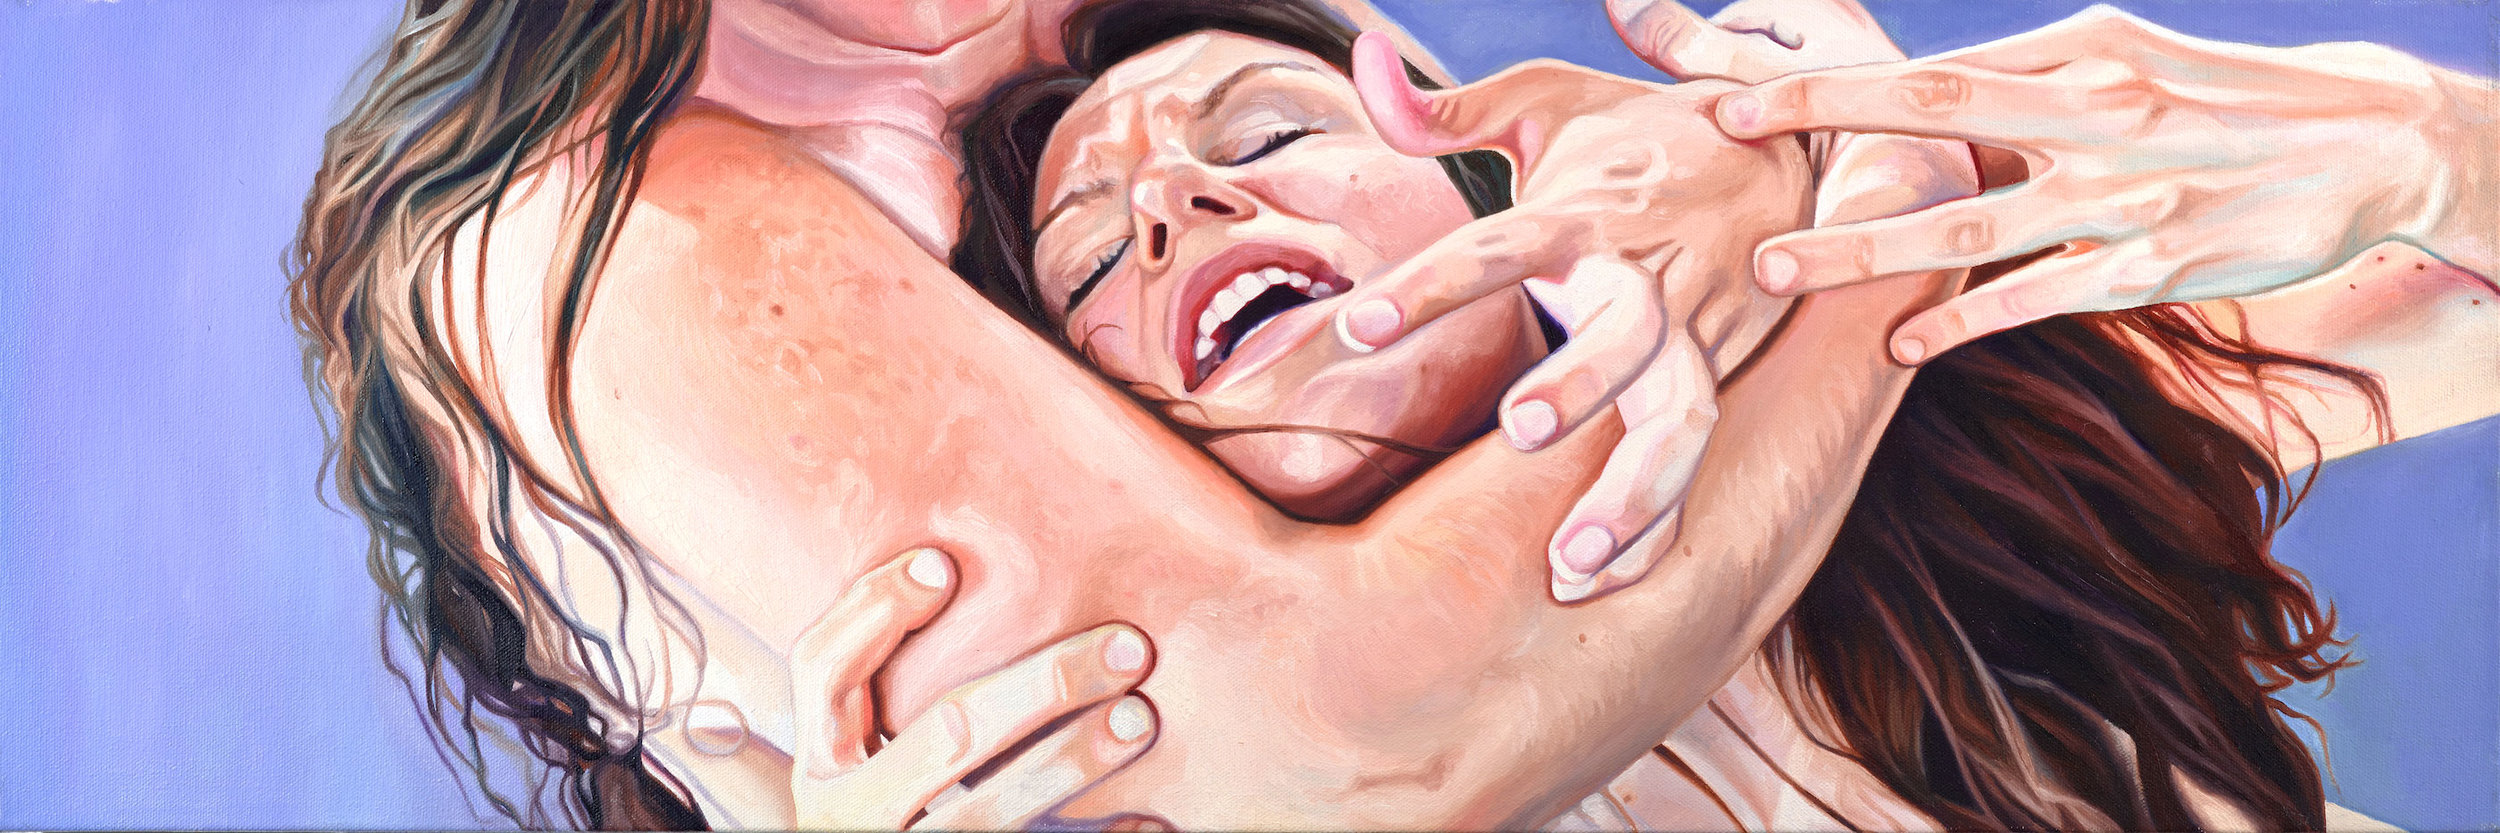 Rage of the Sabines , oil on canvas, 12 x 36 inches, 2015